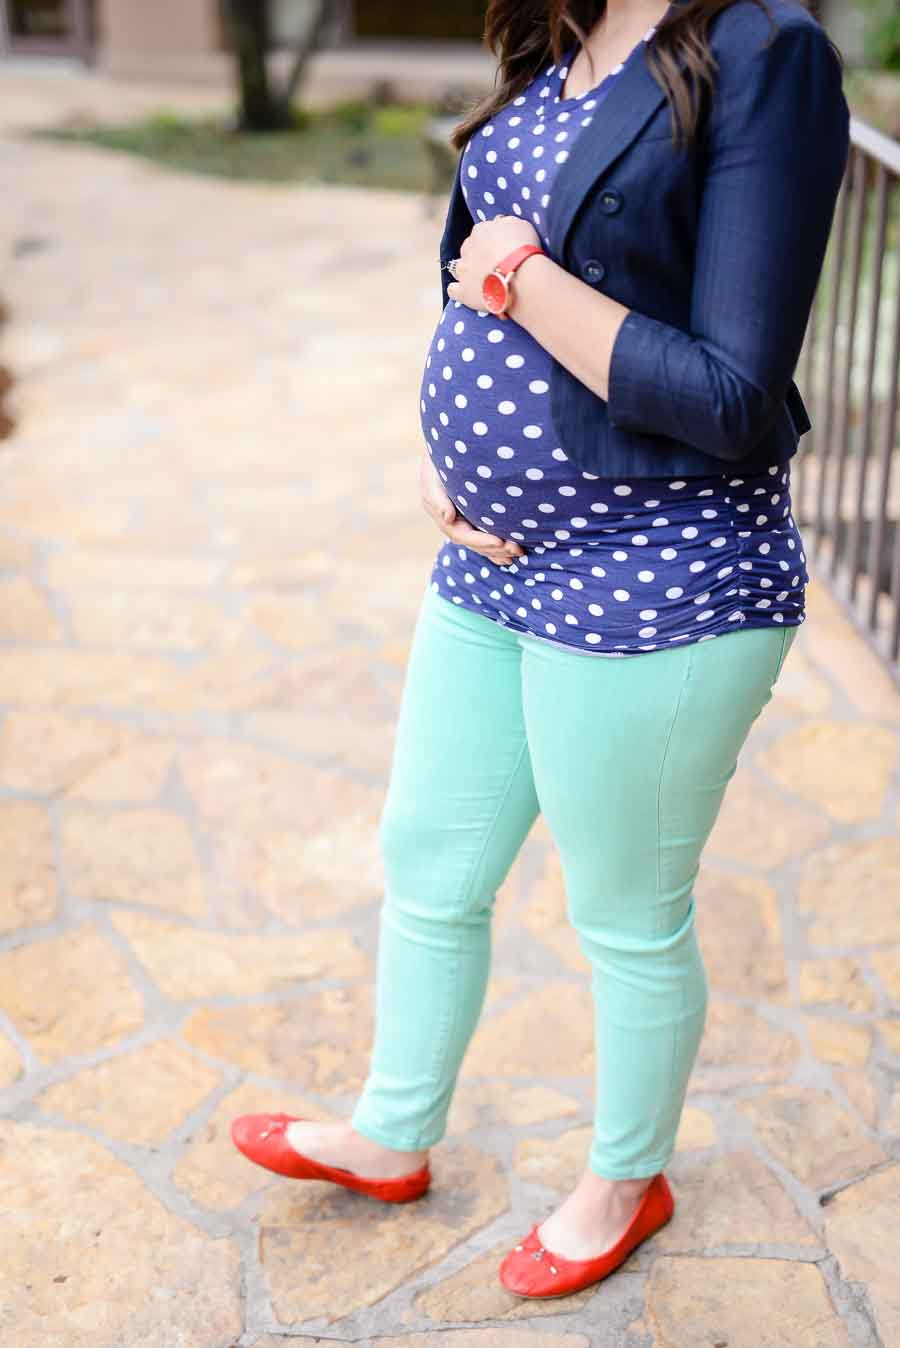 8096c3c5c7 The Best Places to Buy Cute Maternity Clothes at All Price Points